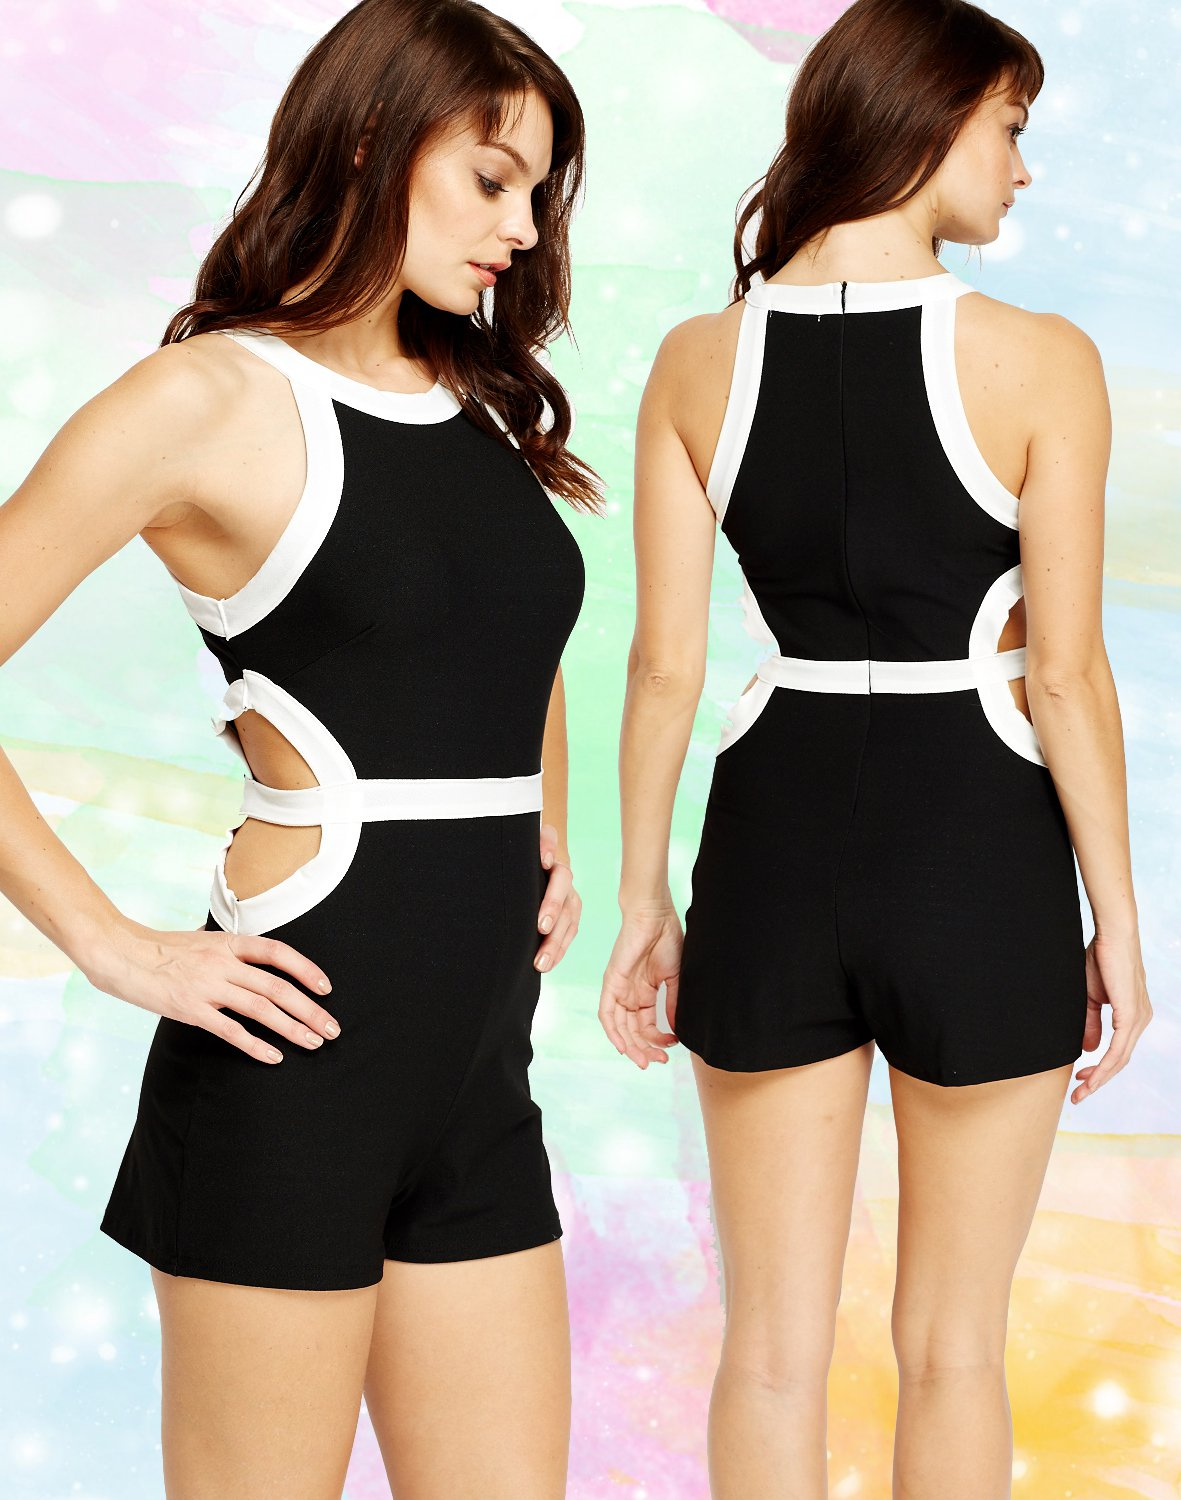 Cut Out Black & White Block Playsuit Medium UK 10 � FREE Worldwide Shipping �